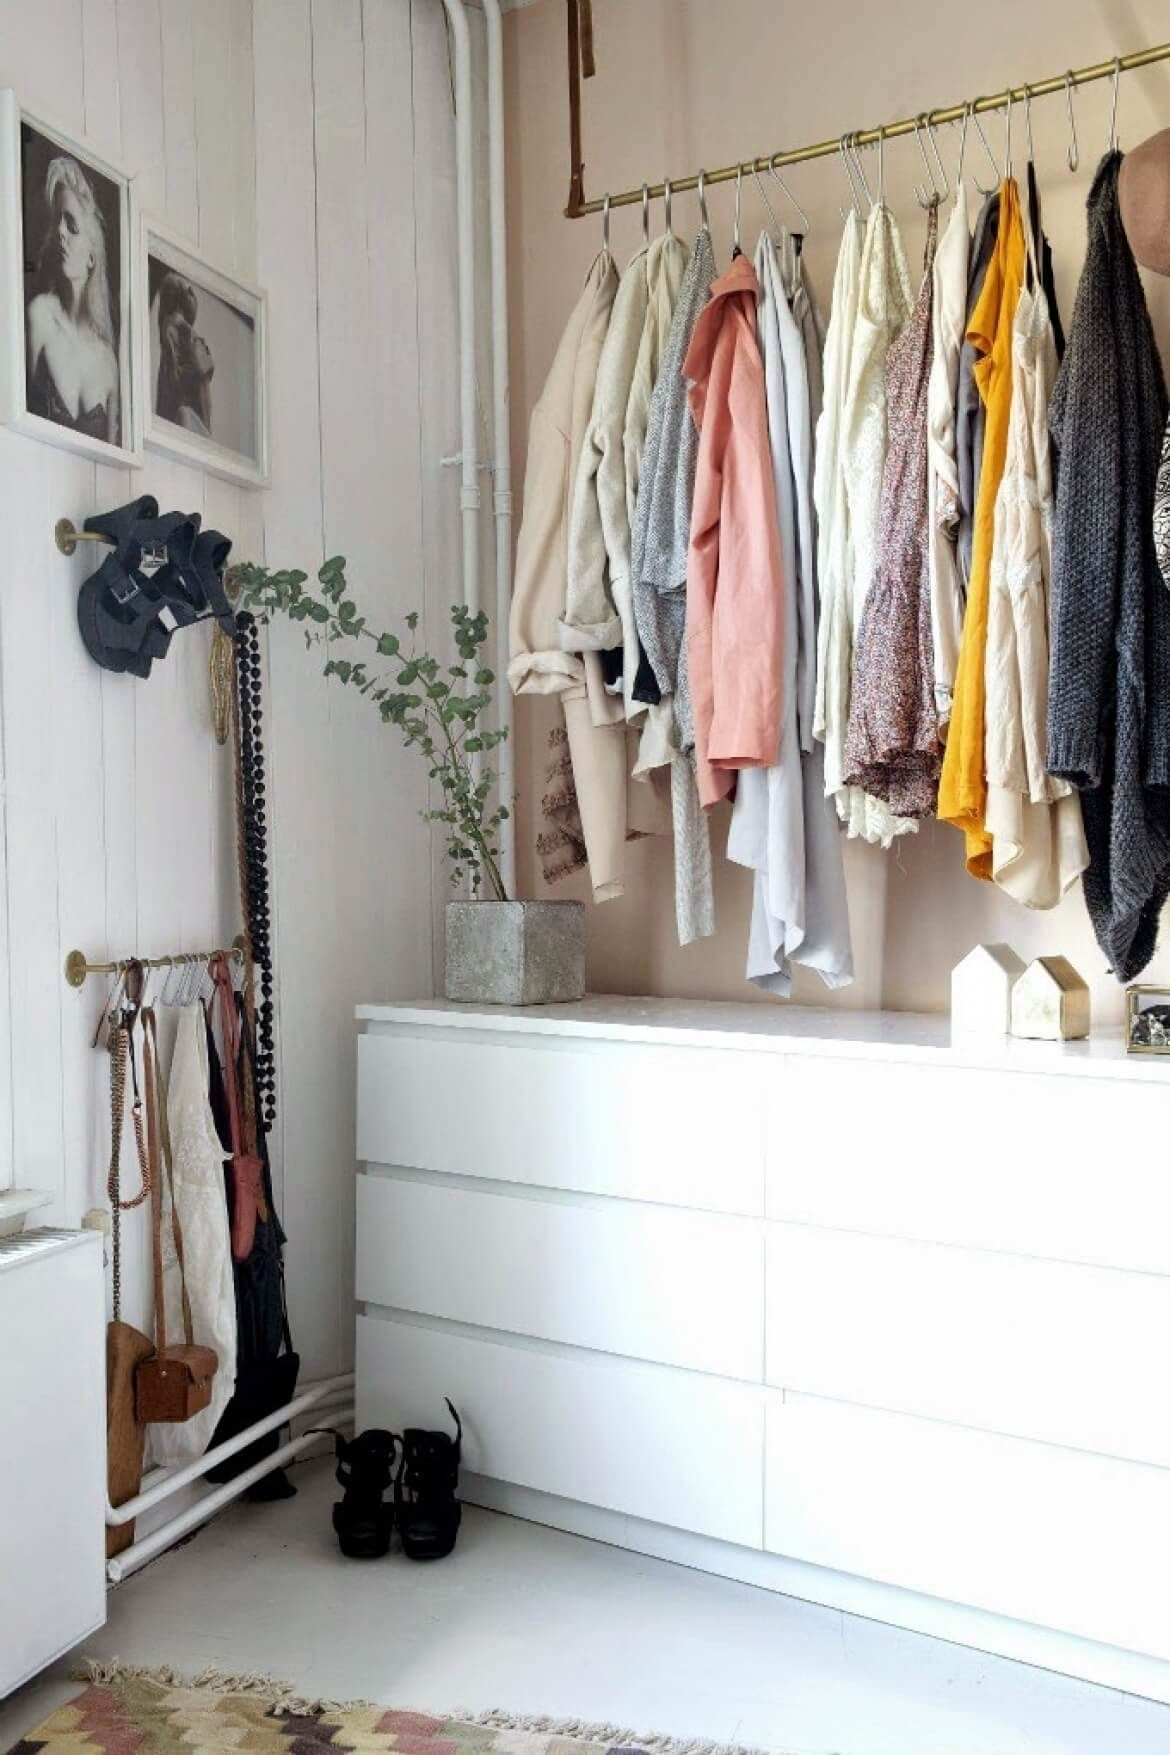 38 Brilliant Bedroom Organization Ideas That Will Help You Keep